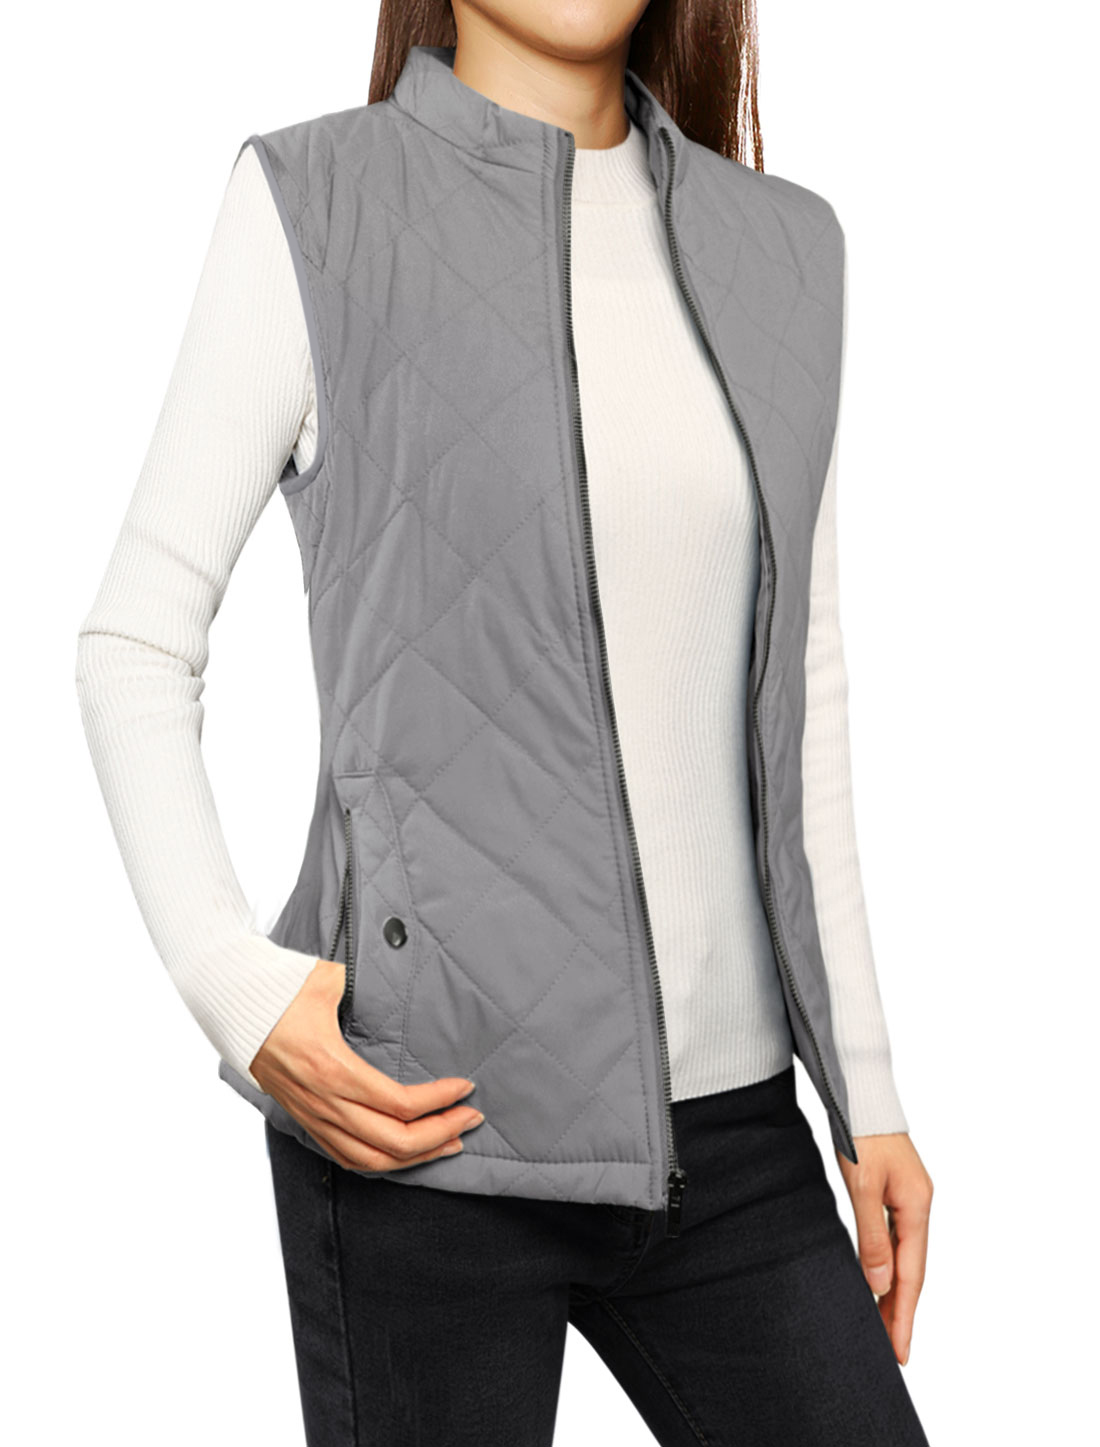 Unique Bargains Women's Stand-up Collar Zip Up Gilet Quilted Padded Vest